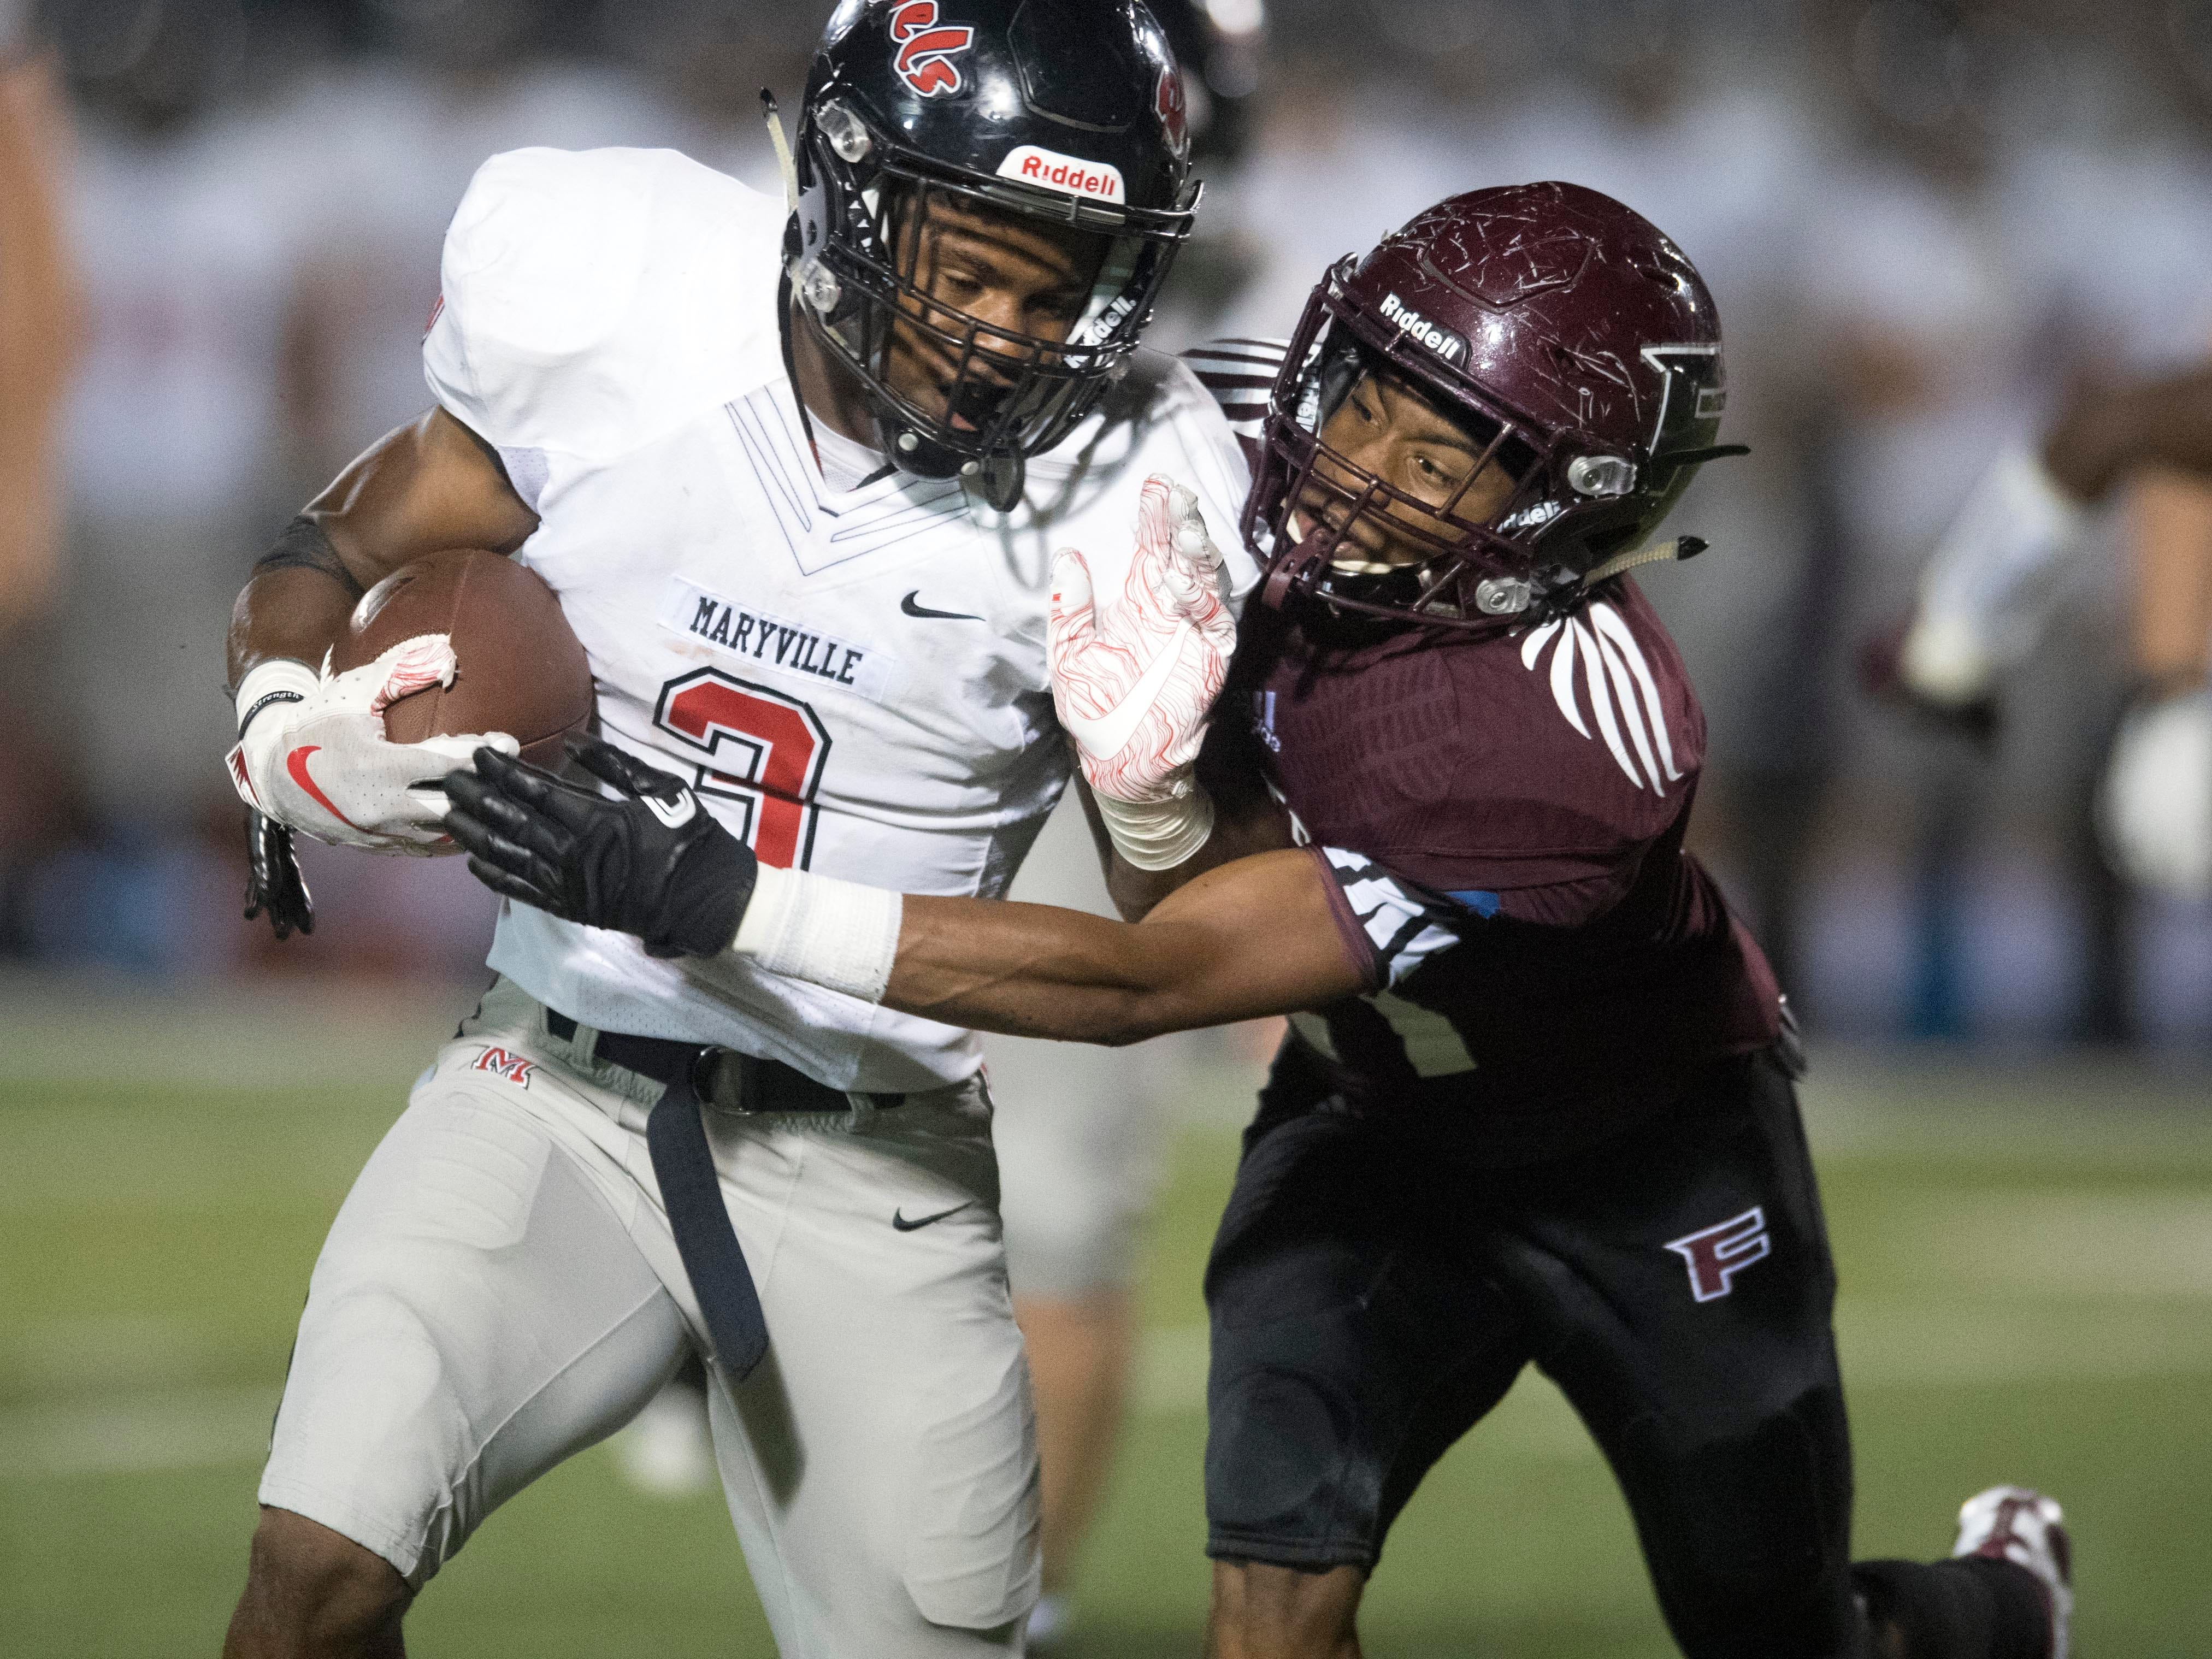 Maryville's A.J. Davis (3) is tackled by Fulton's Kevin Johnson (21) in the football at Fulton on Friday, September 21, 2018.